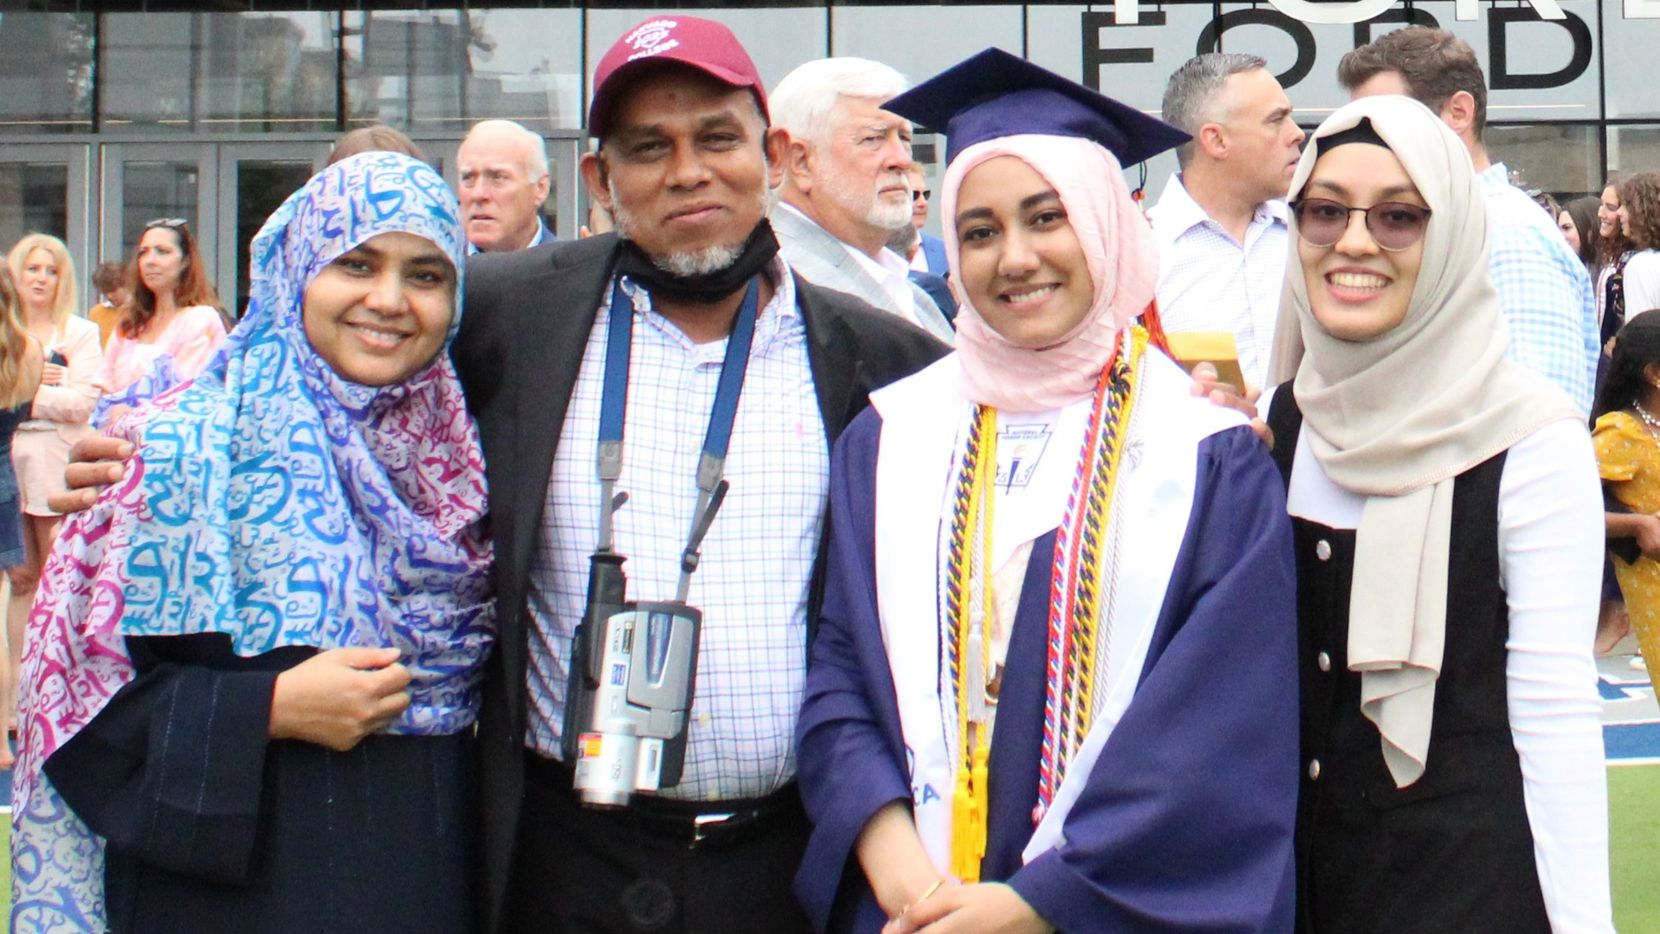 Valedictorian Labiba Uddin (second from right) celebrated her graduation from Wakeland High School on May 23, 2021, with parents Lipi Akter and Mohammad Abbas Uddin (left) and sister Aishah Alvi Uddin.